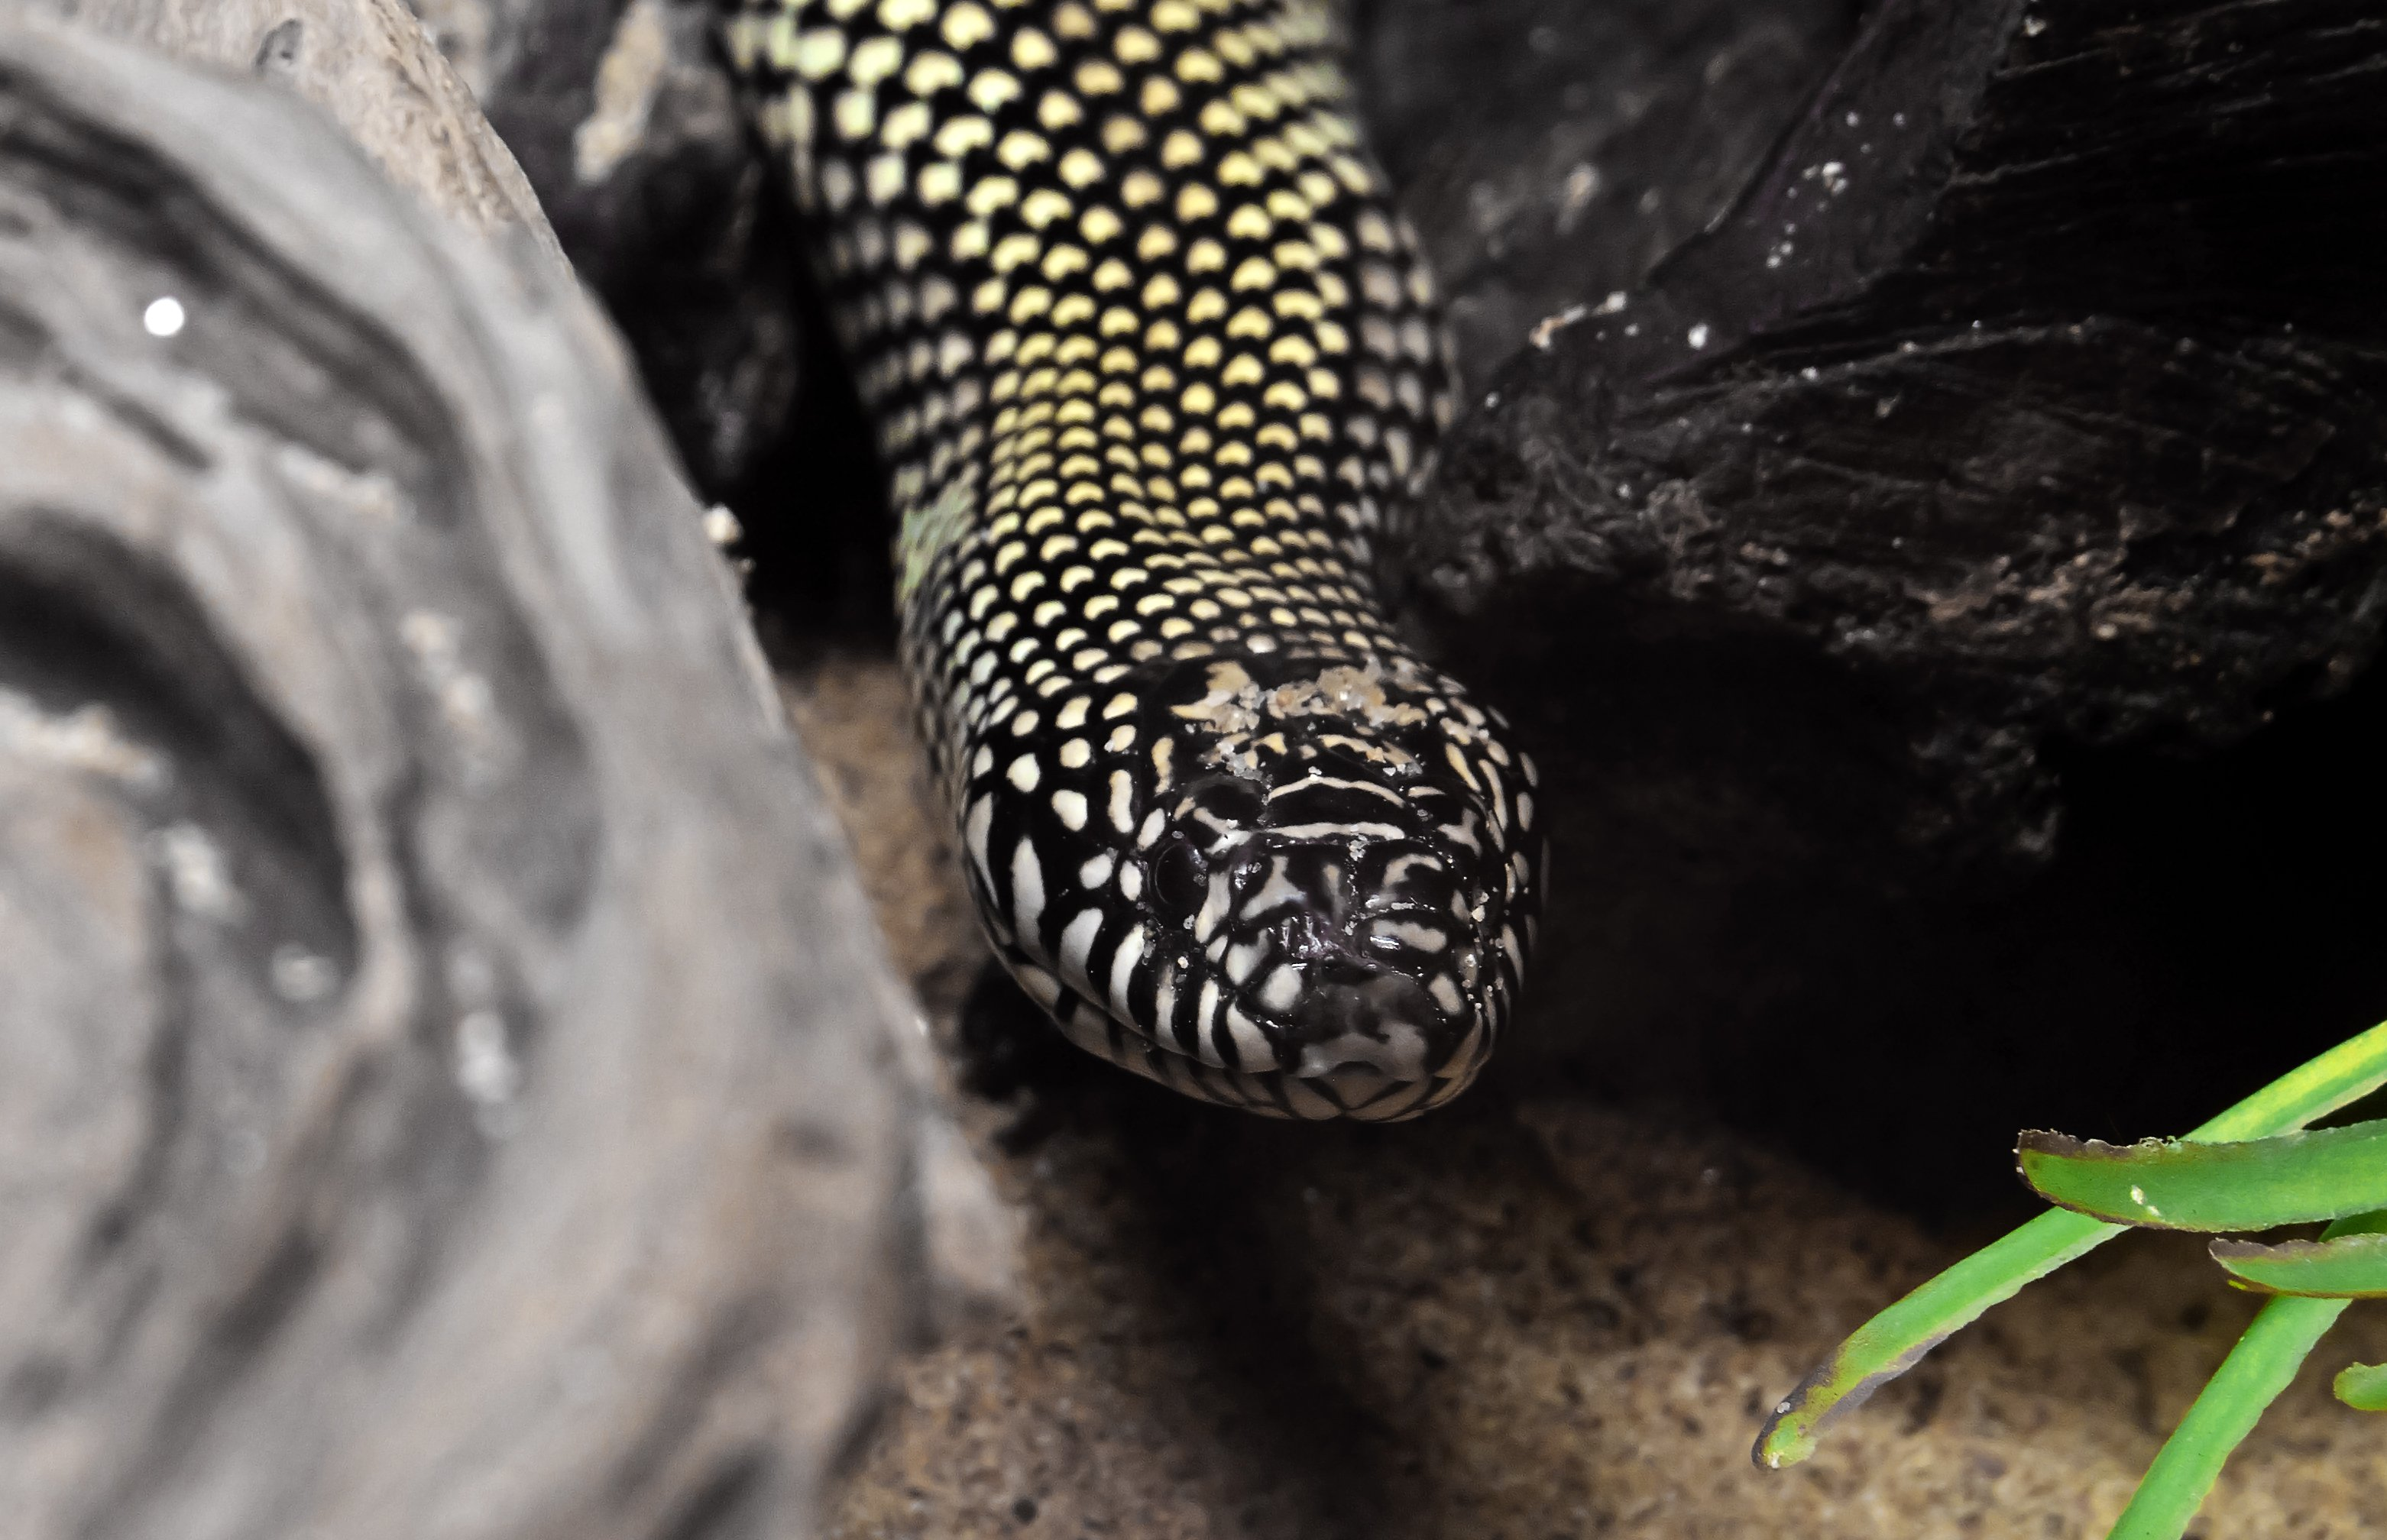 Close-up of a Desert Kingsnake in a nature-like environment   Photo: Shutterstock